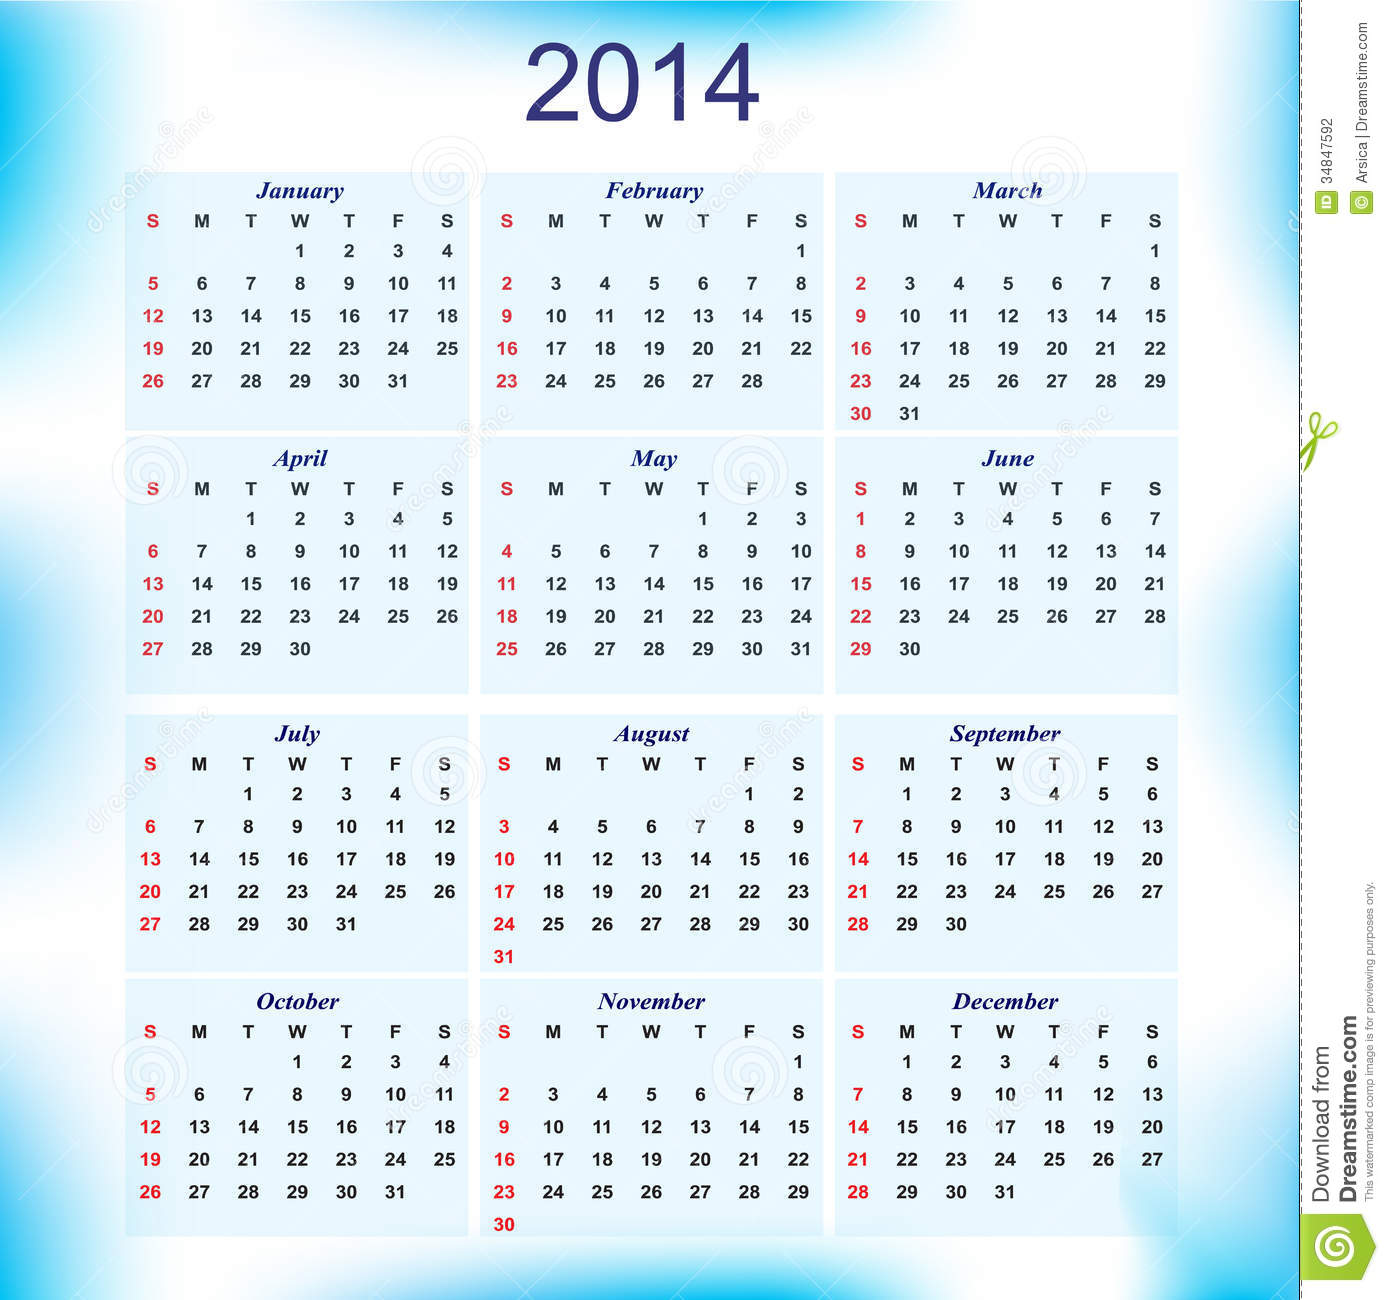 New Year calendar for all months of the year 2014.